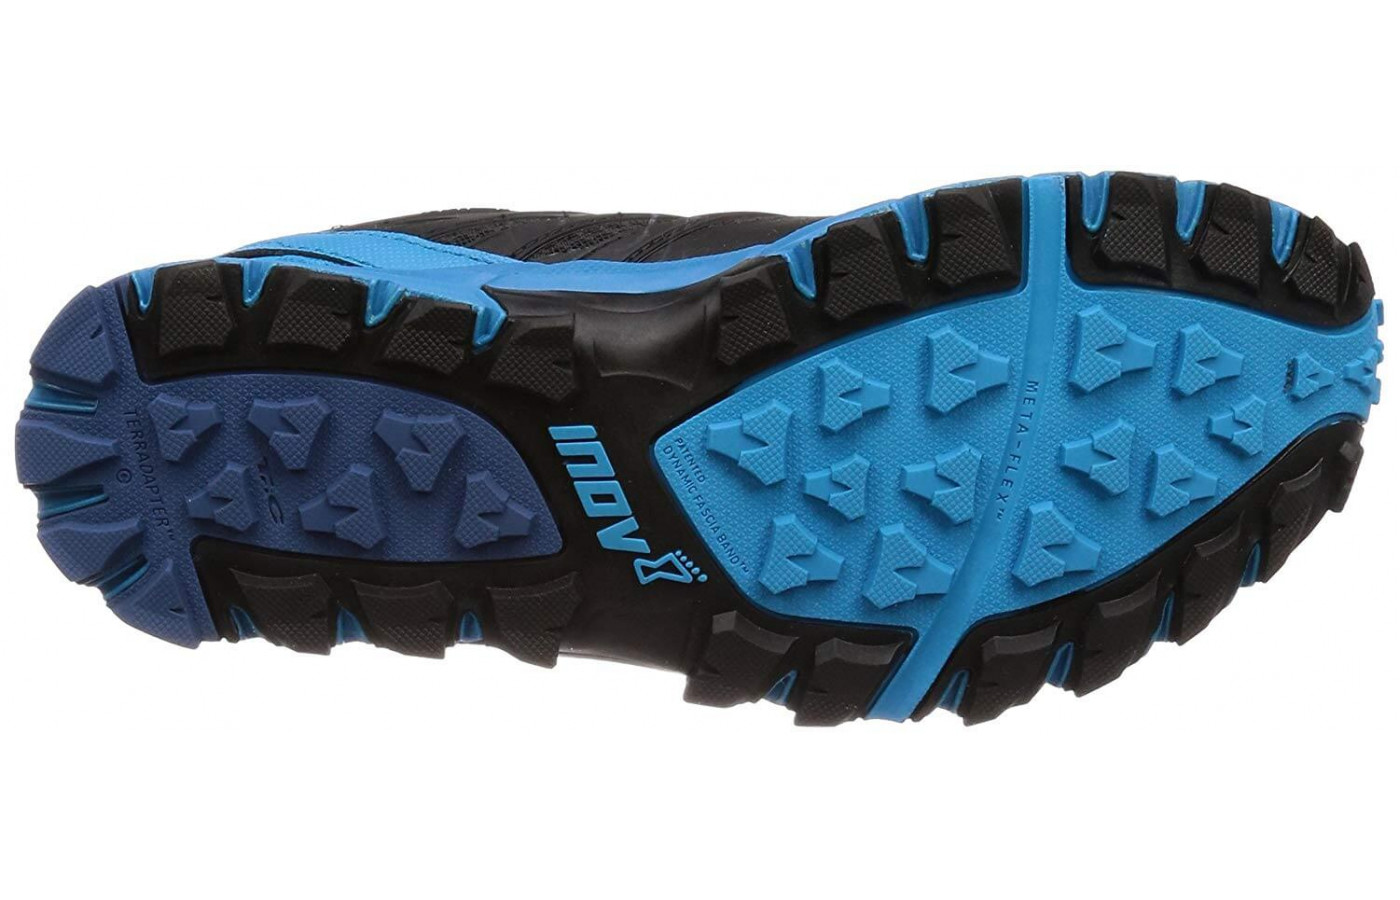 Inov-8 Trailtalon 290 bottom